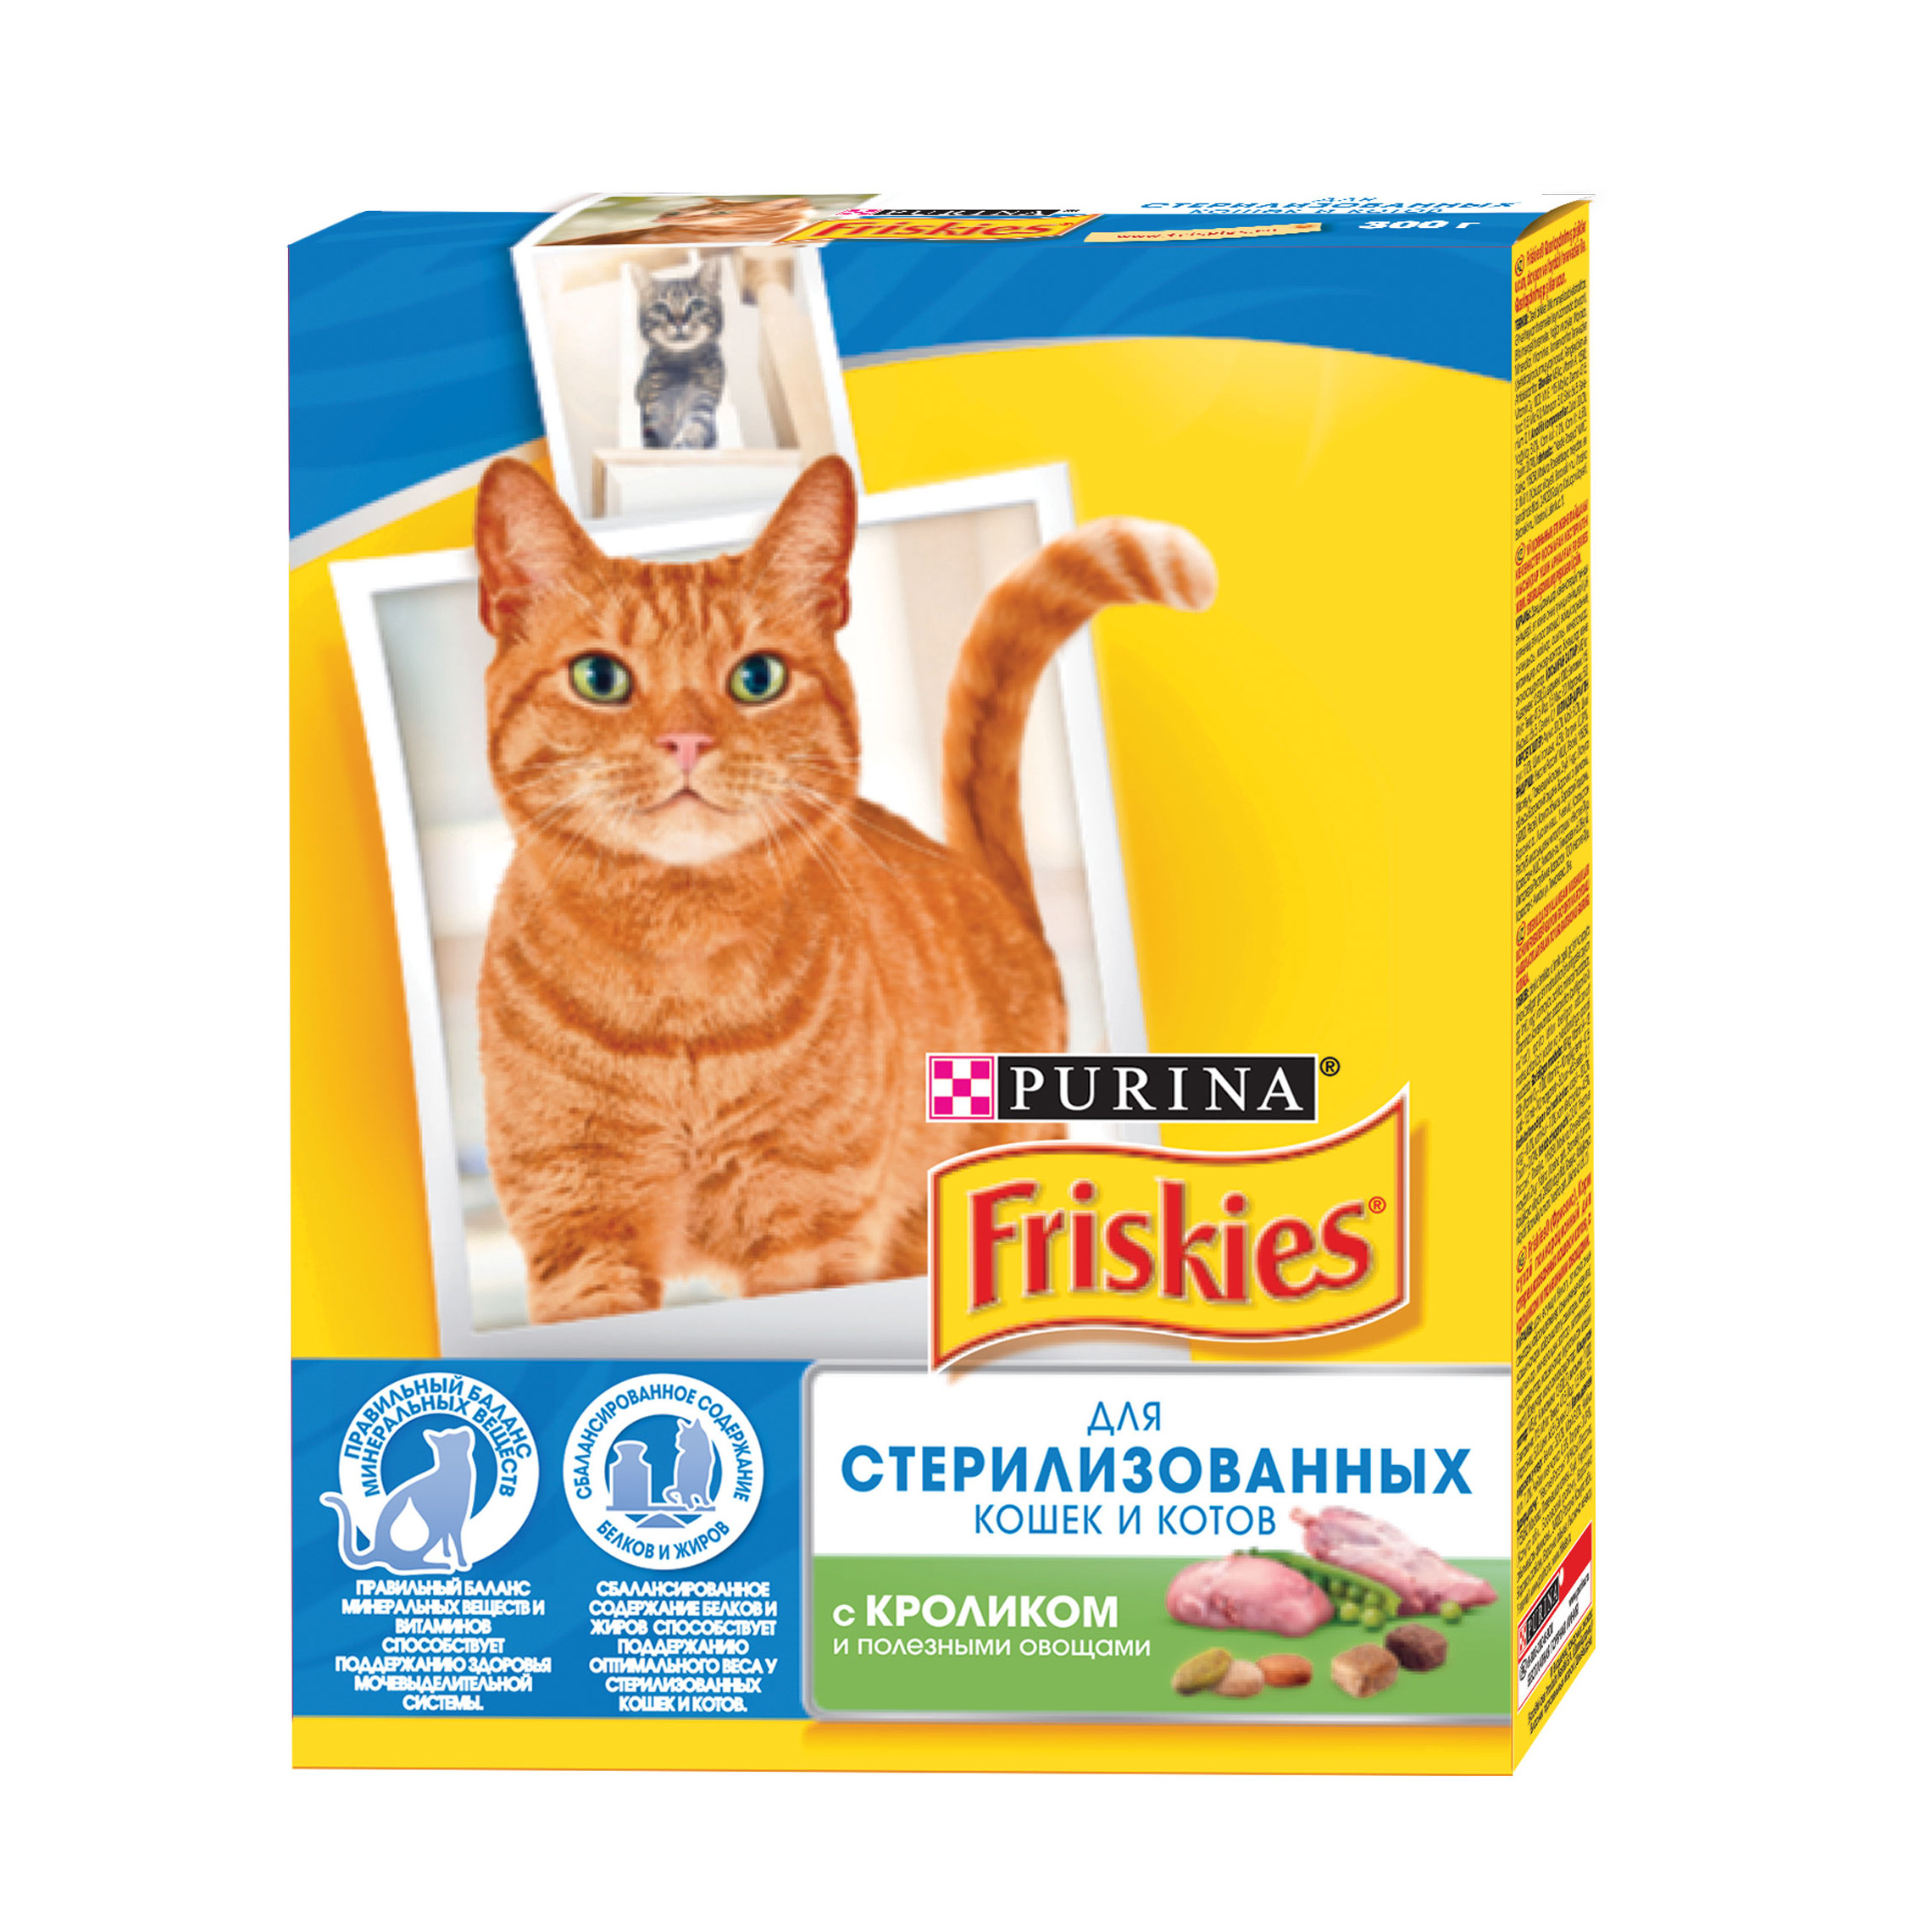 A set of dry food Friskies for sterilized cats and cats with a rabbit and healthy vegetables, Cardboard box, 300 g x 10 pcs. diy 9v 6 x aa battery holder case box with leads and switch